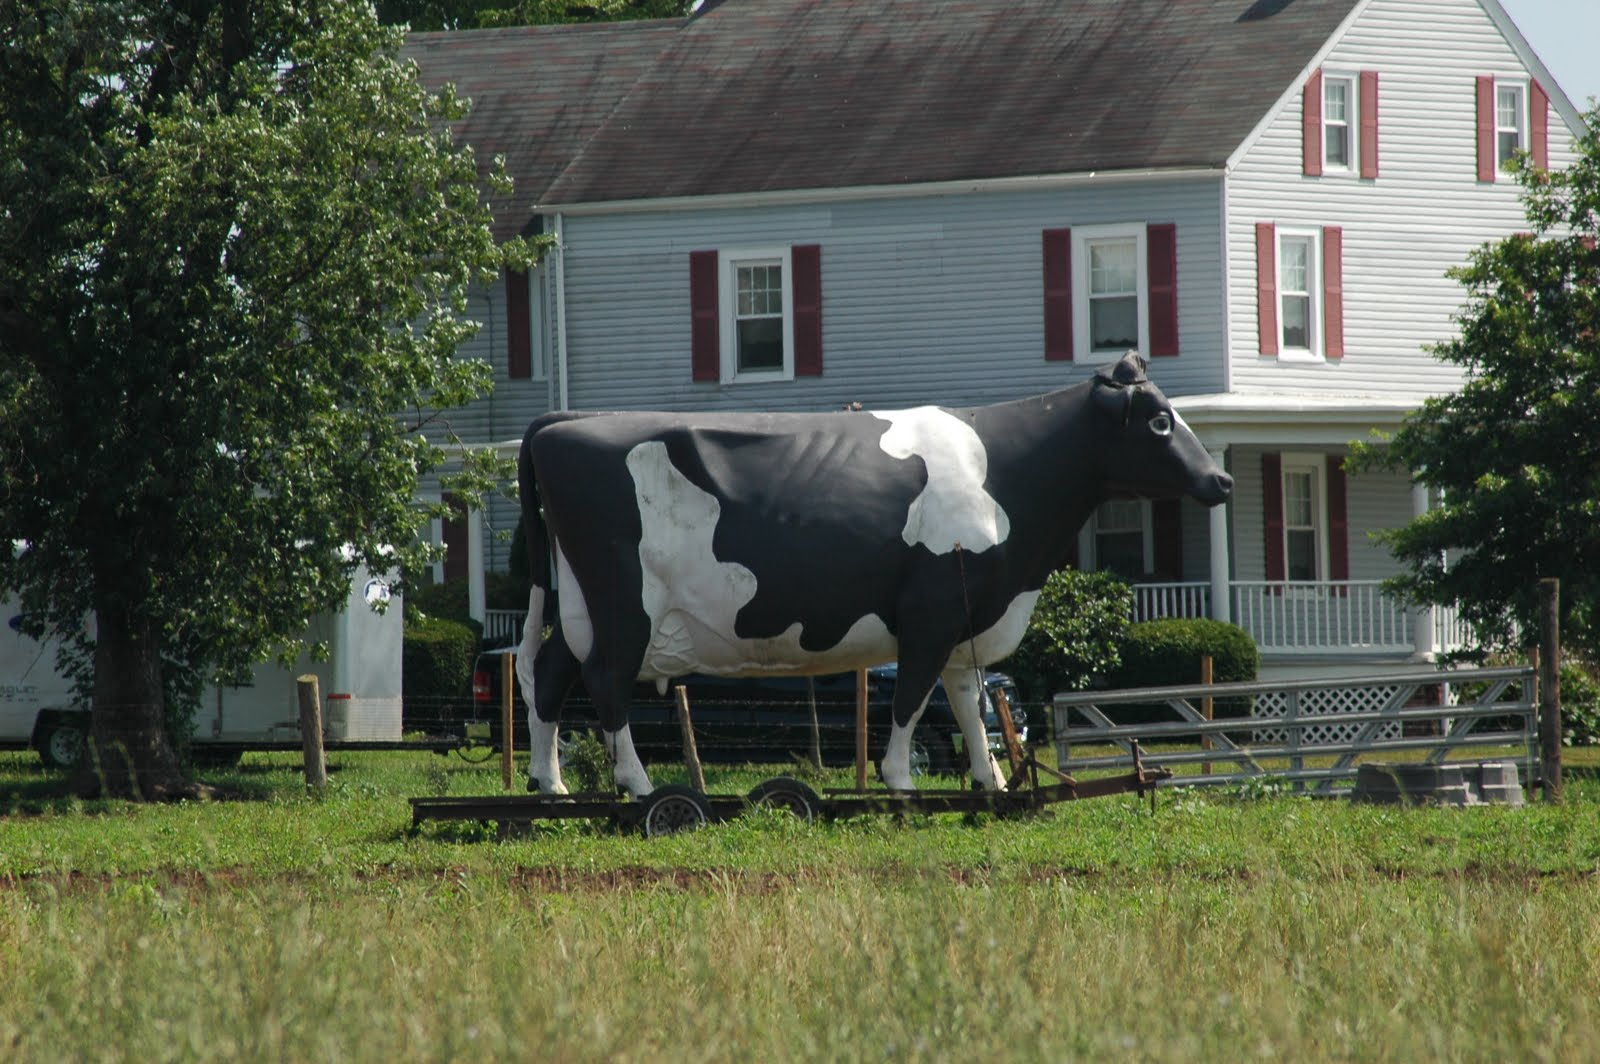 Giant cow in New Jersey